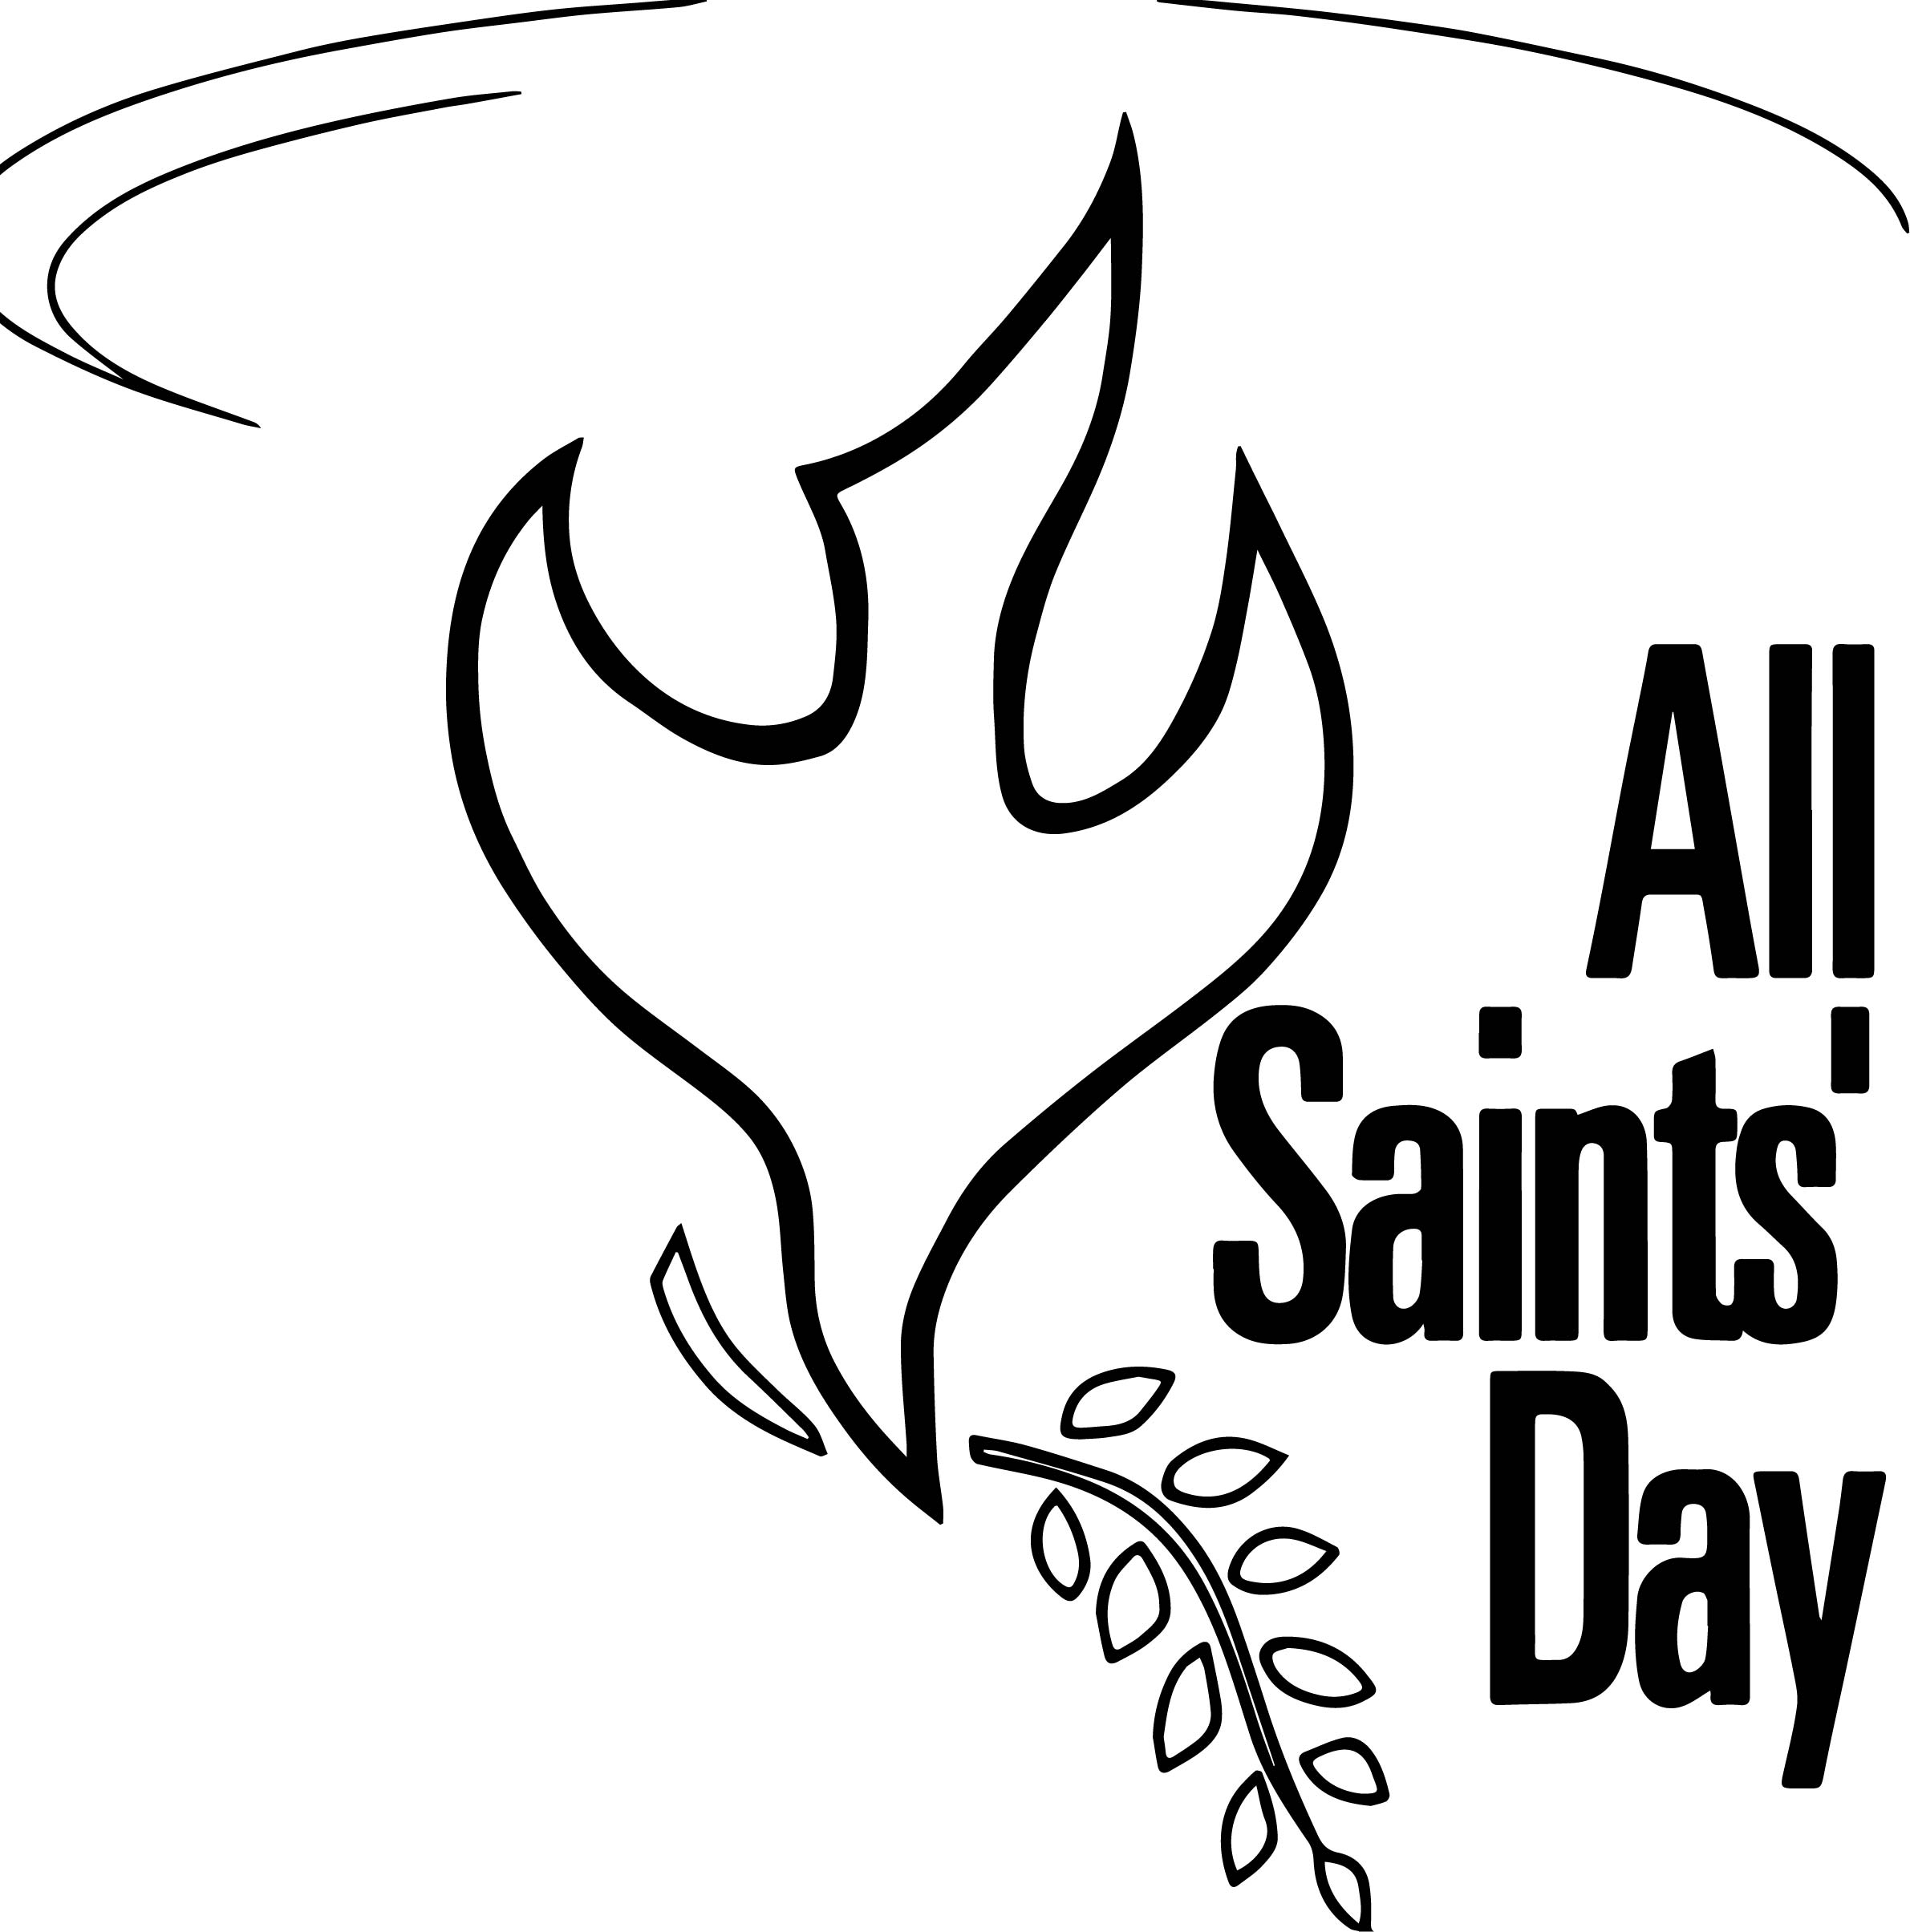 All saint day bird shape coloring page for All saints day coloring pages